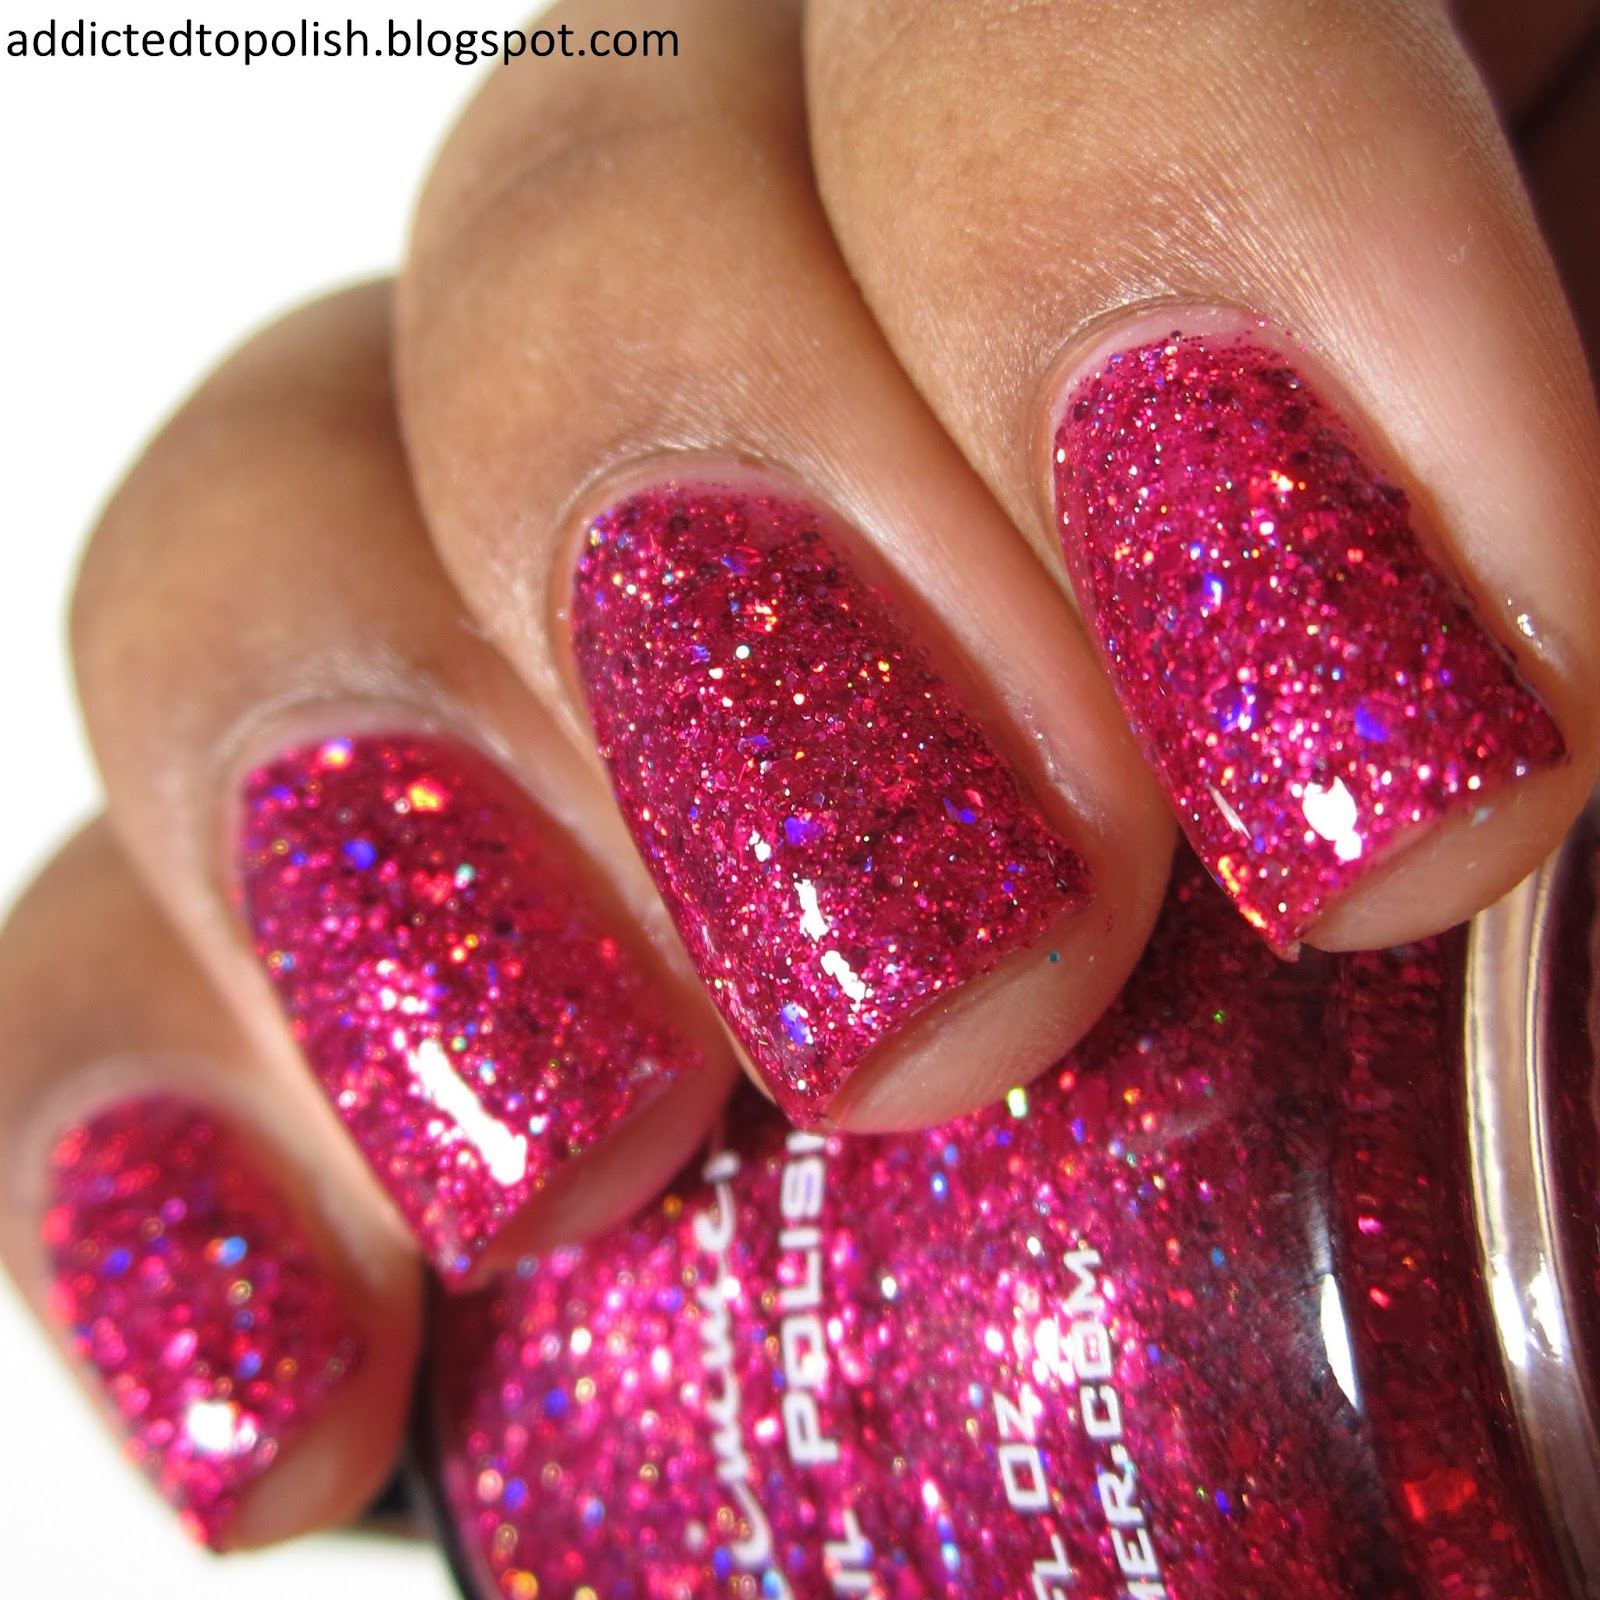 KBShimmer-Turnip-the-Beet-topcoat-Winter-2014